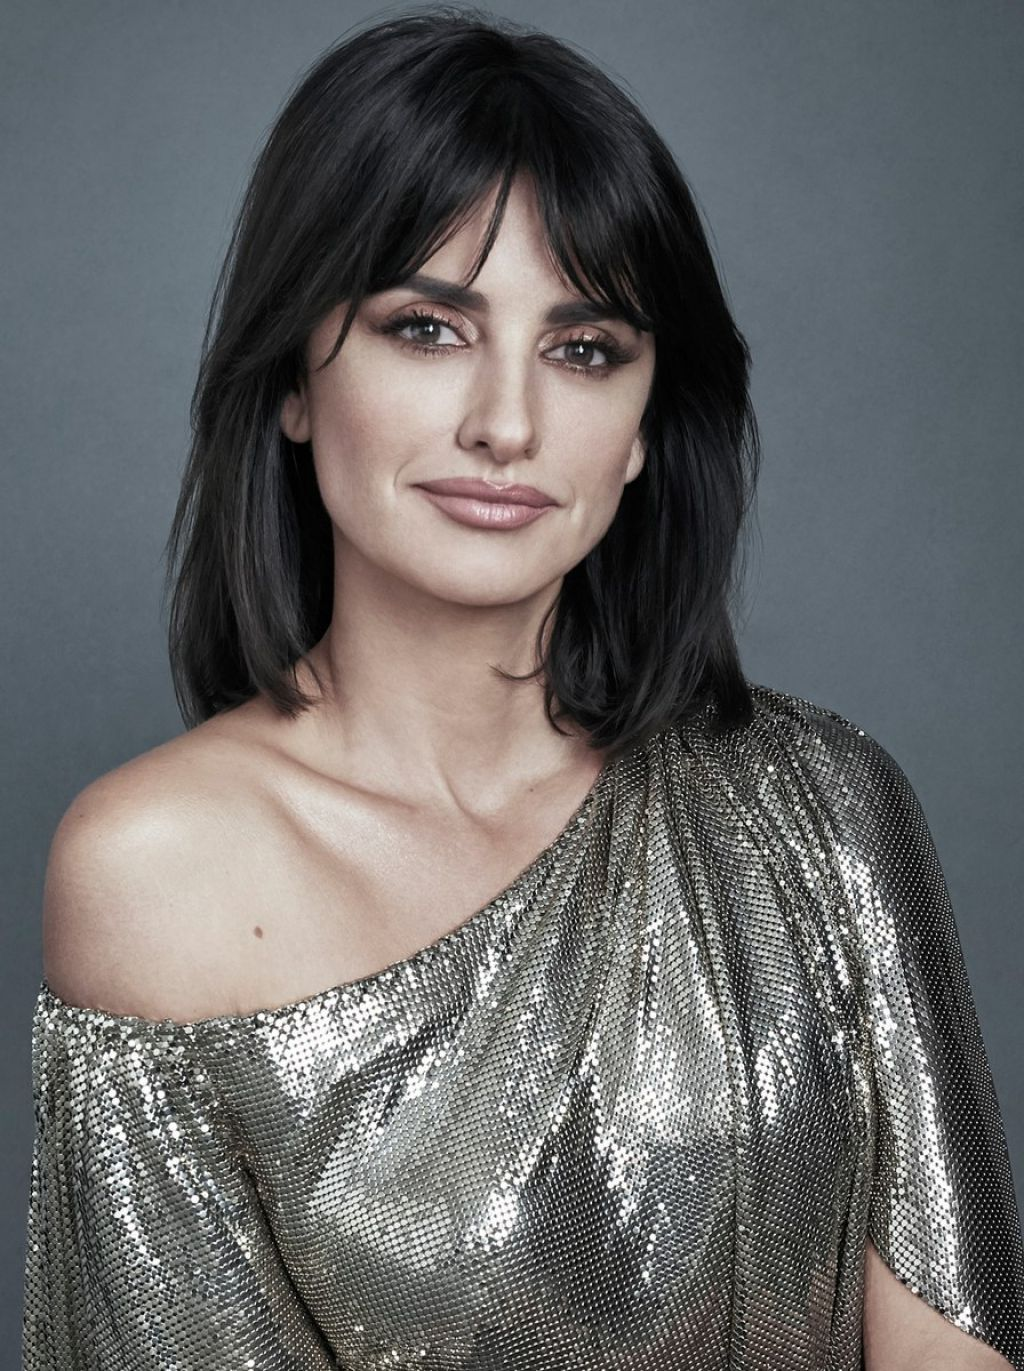 Penelope Cruz Latest Photos - CelebMafia Penelope Cruz